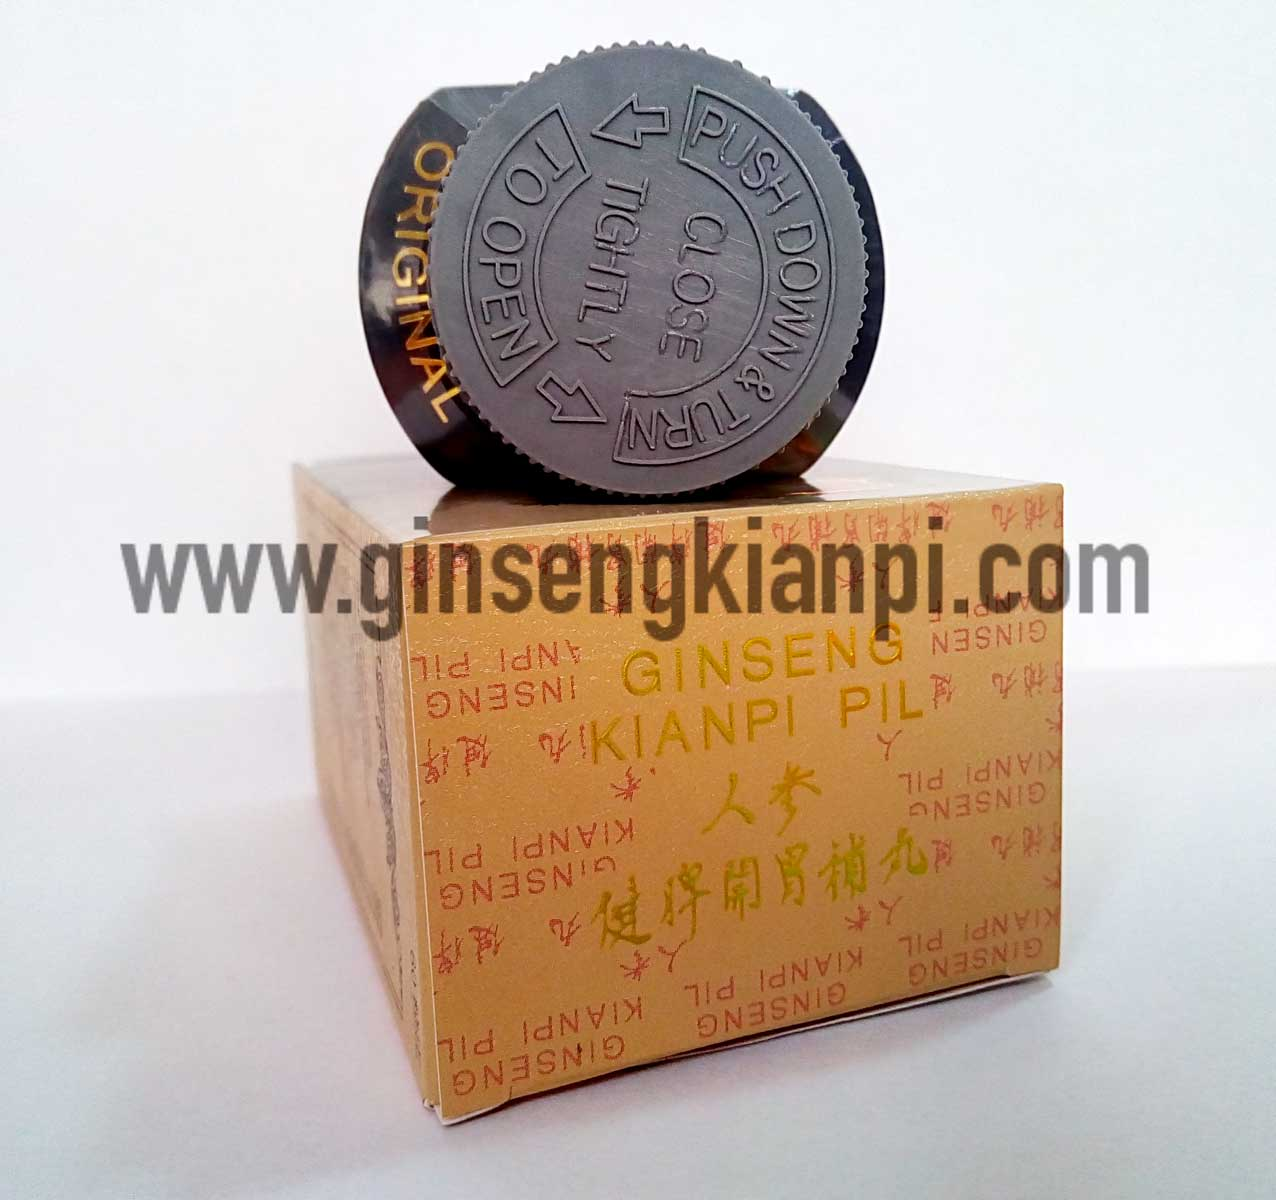 Buy Ginseng Kianpi Pill Free Shipping Worldwide Pil Wisdom New Packing This Is The Packaging We Have It Comes With Square Gold Hologram In Corner So Most Common Name